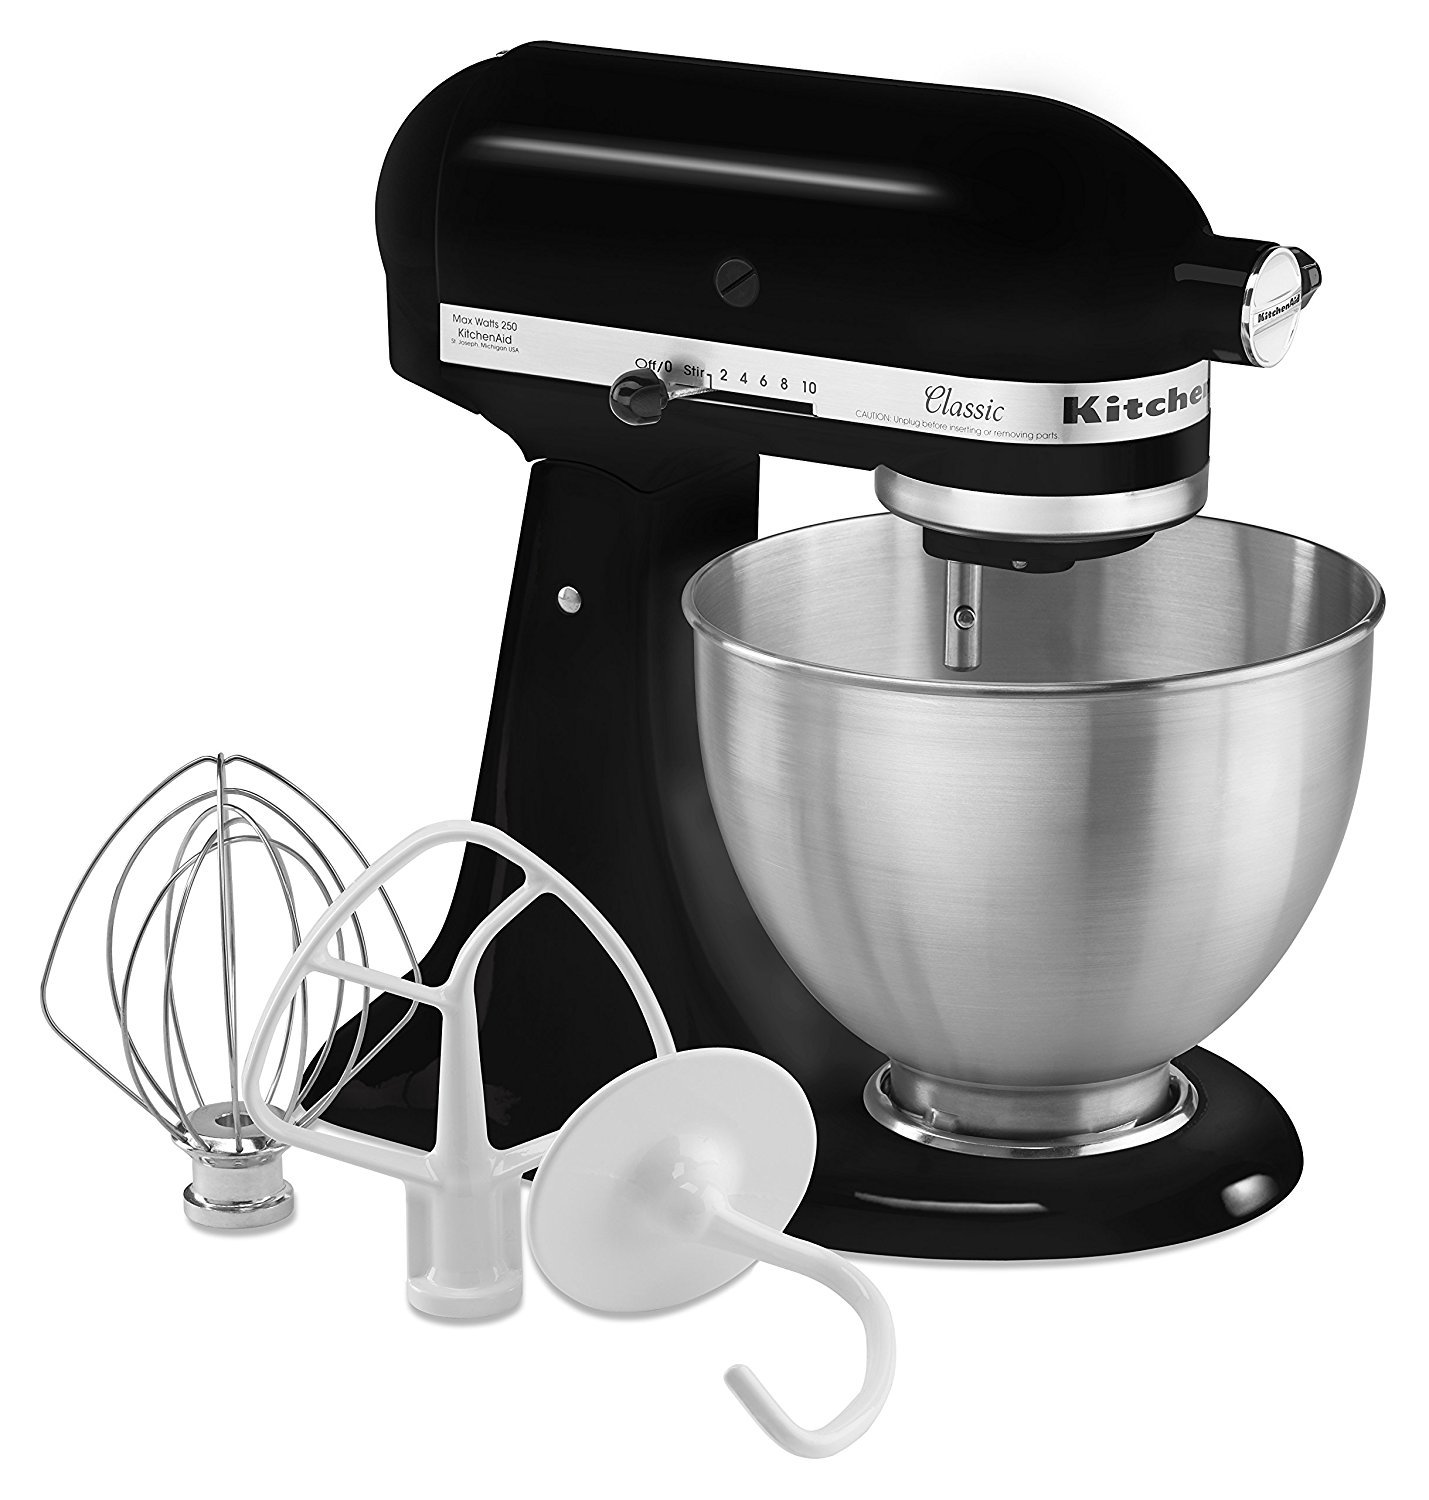 Prime Where To Save 100 On A Kitchenaid Stand Mixer Aol Lifestyle Home Interior And Landscaping Analalmasignezvosmurscom